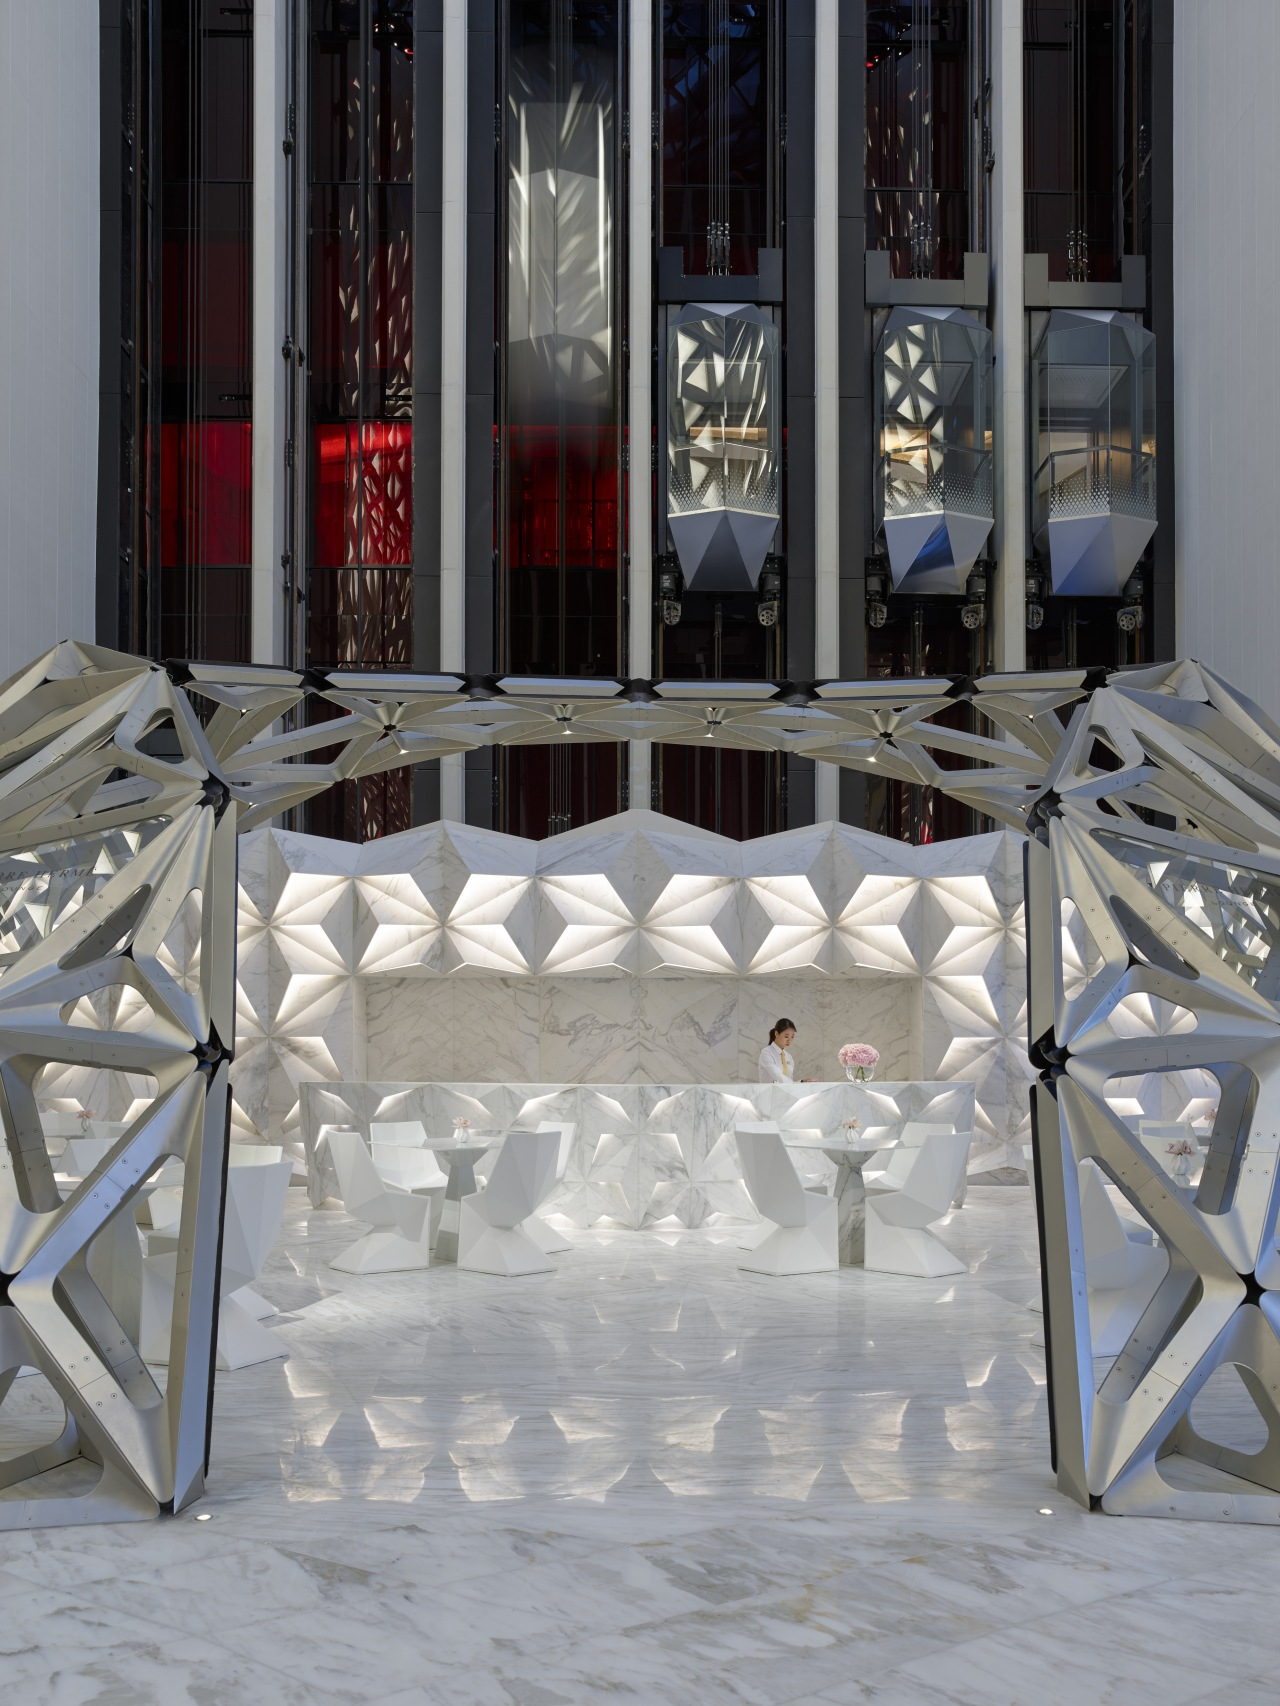 Glass elevators rise behind the faceted reception desk chair, floor, flooring, furniture, table, window, gray, black